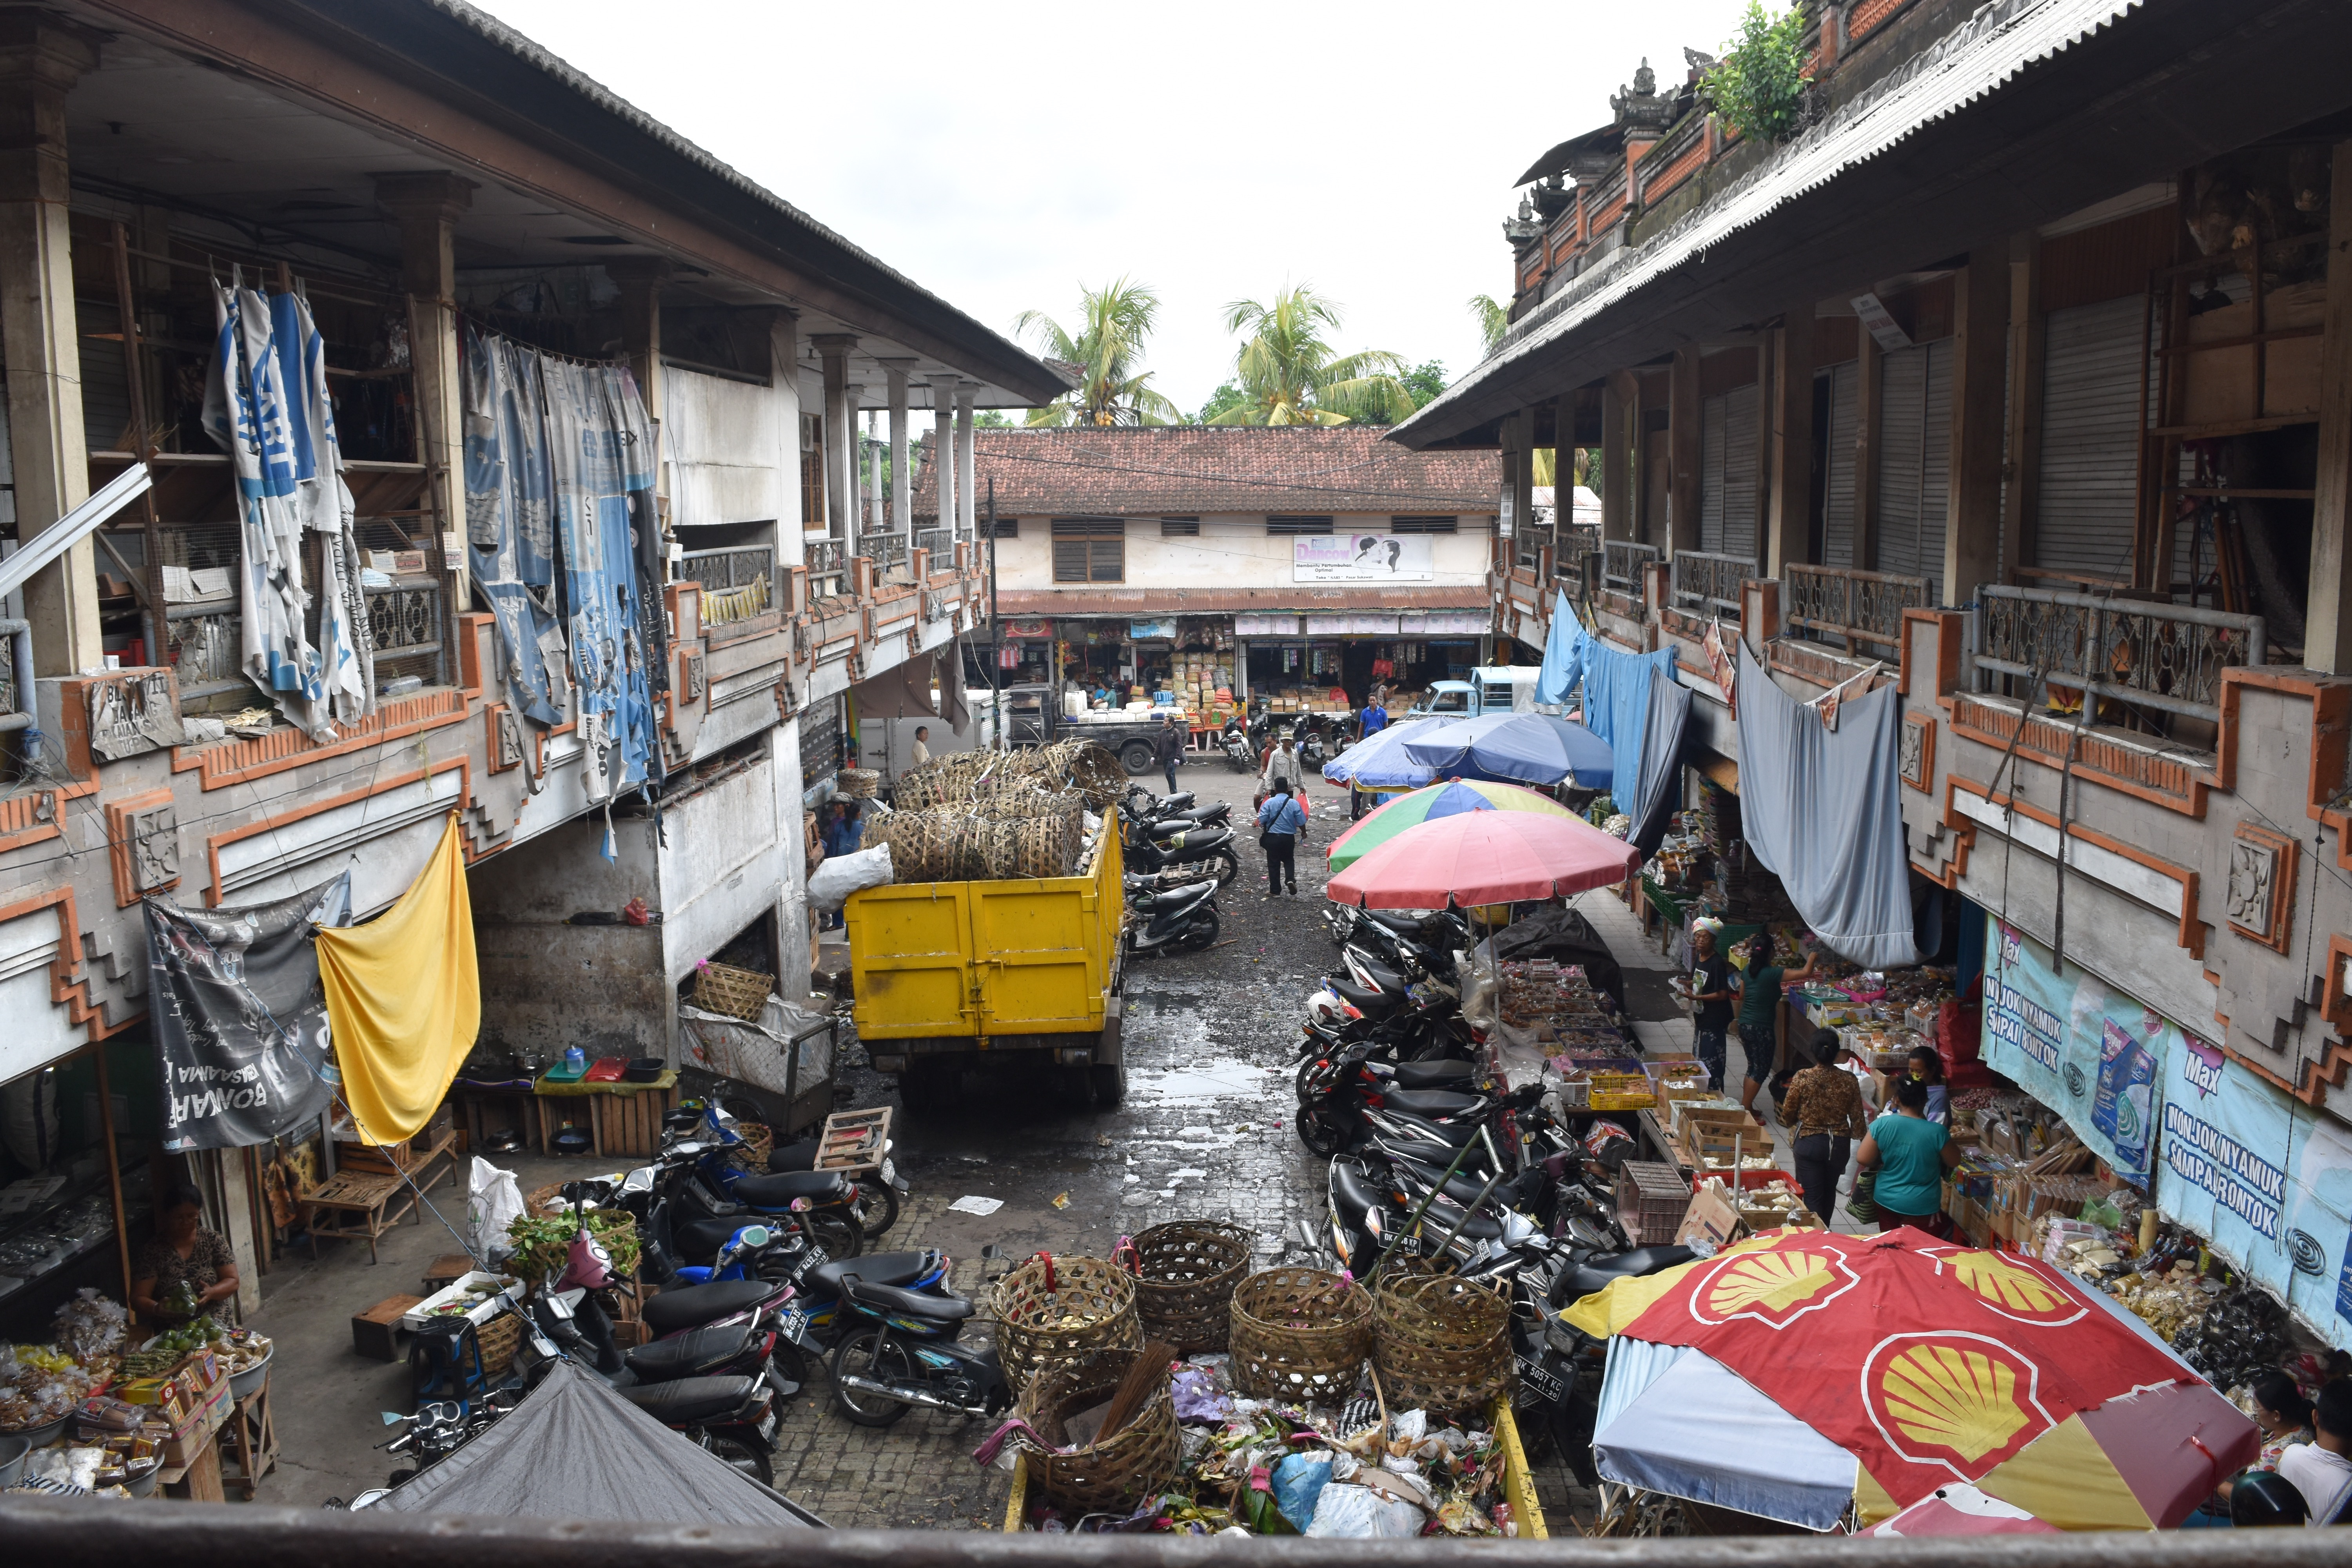 A market in Indonesia, awaiting promised renovations